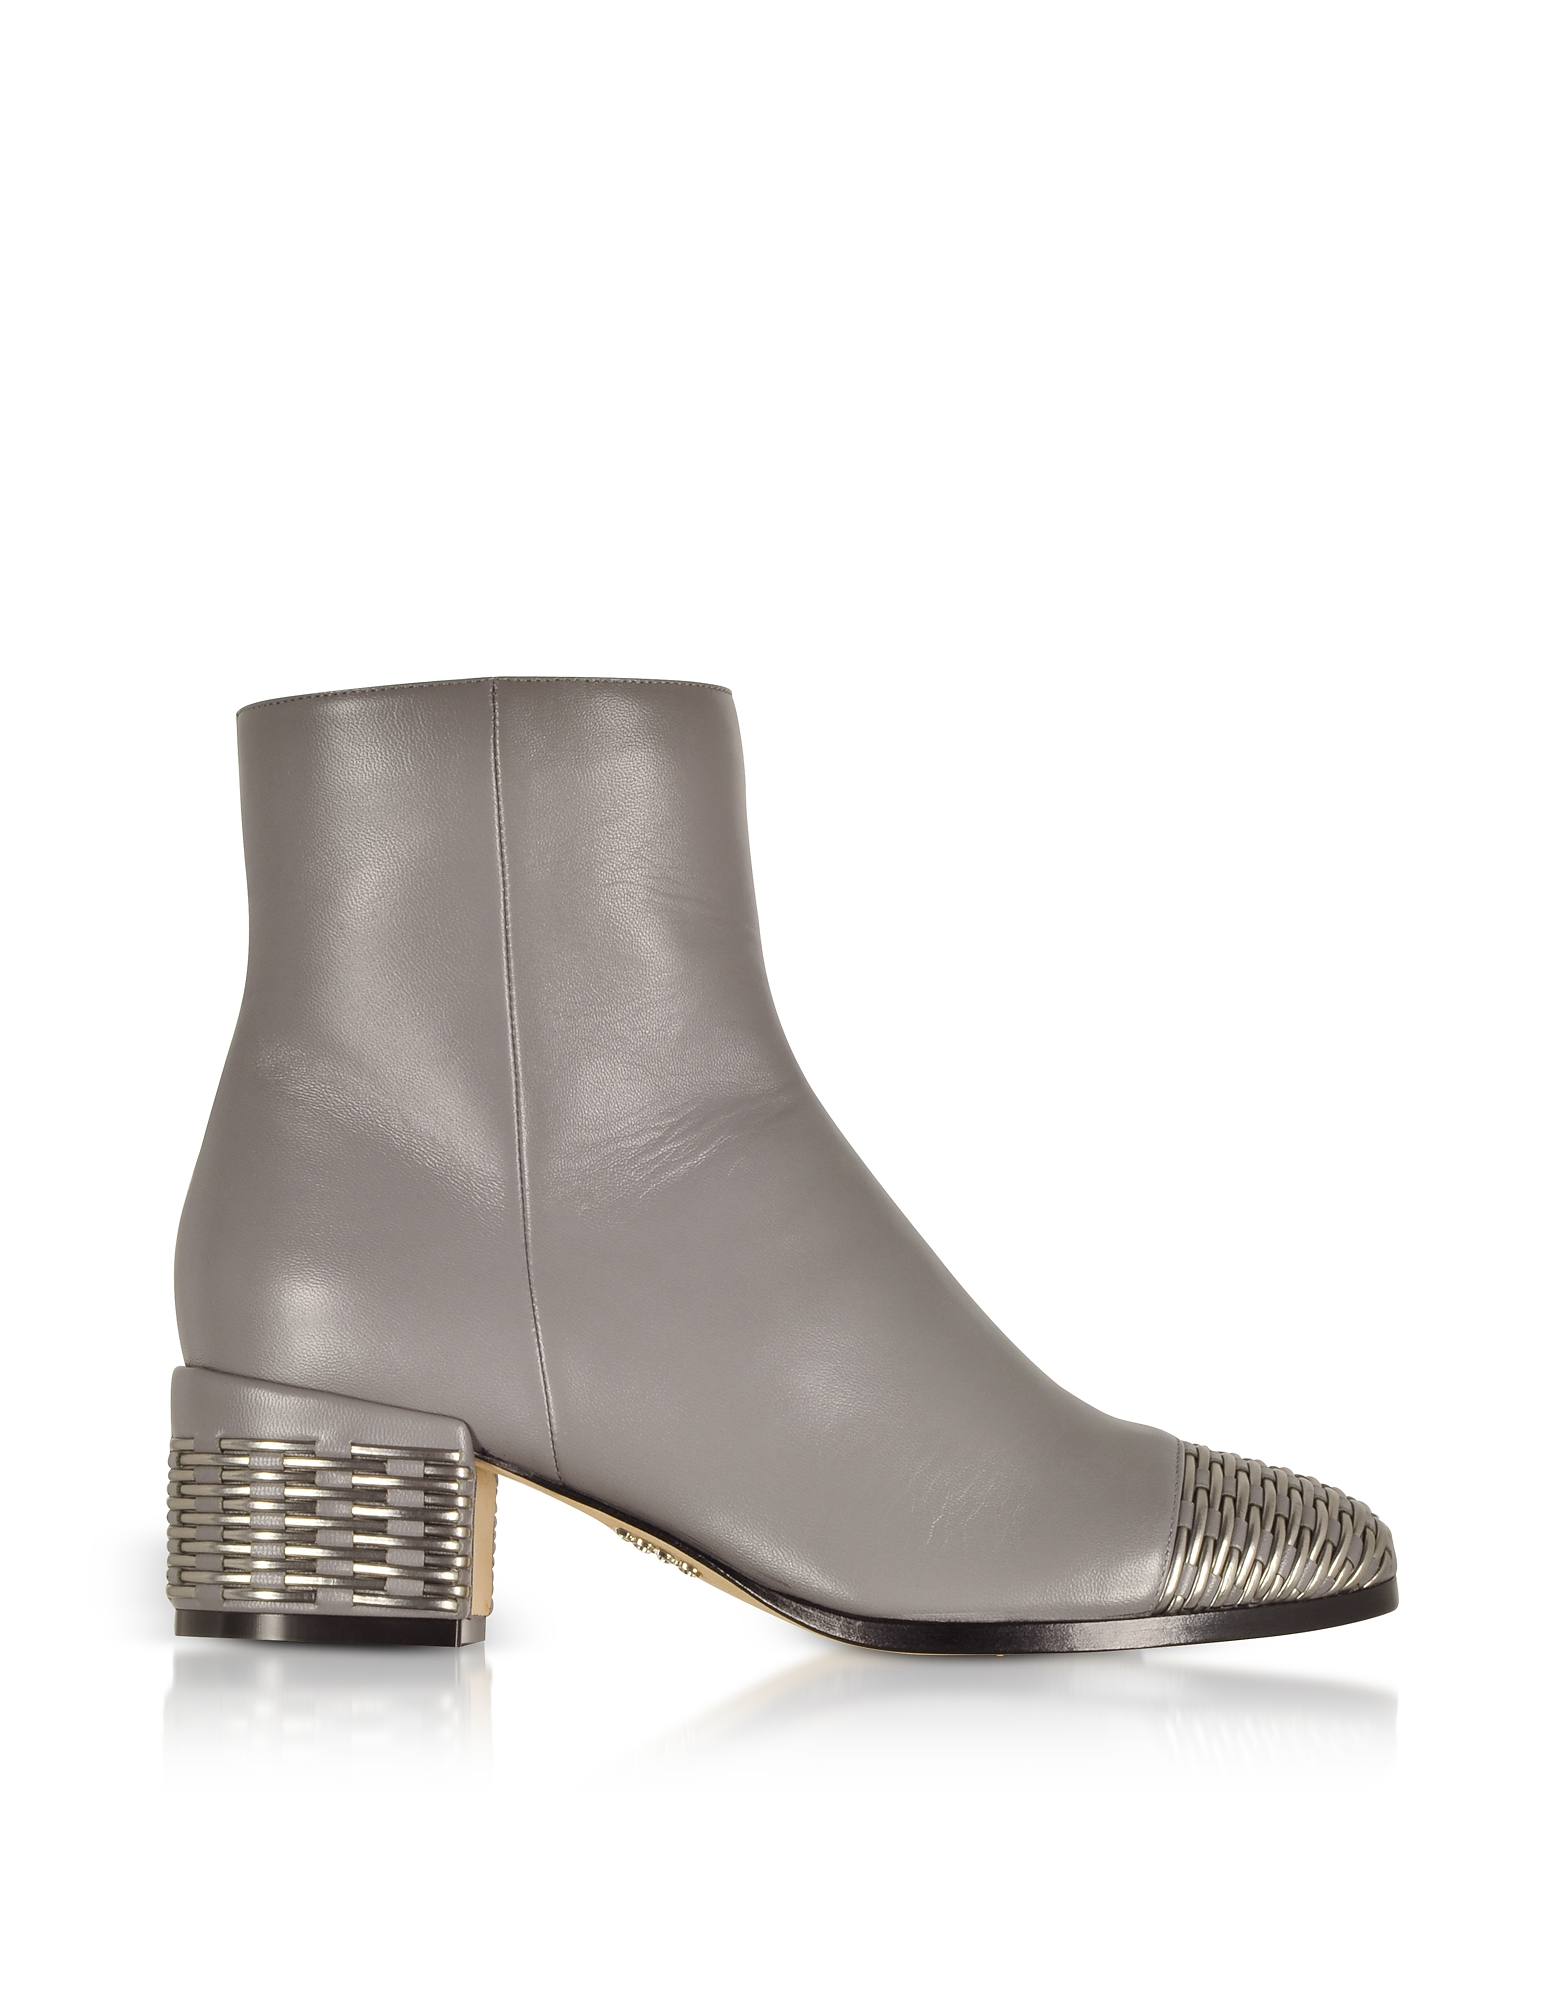 Rodo Shoes, Gray and Silver Woven Leather Mid Heel Booties